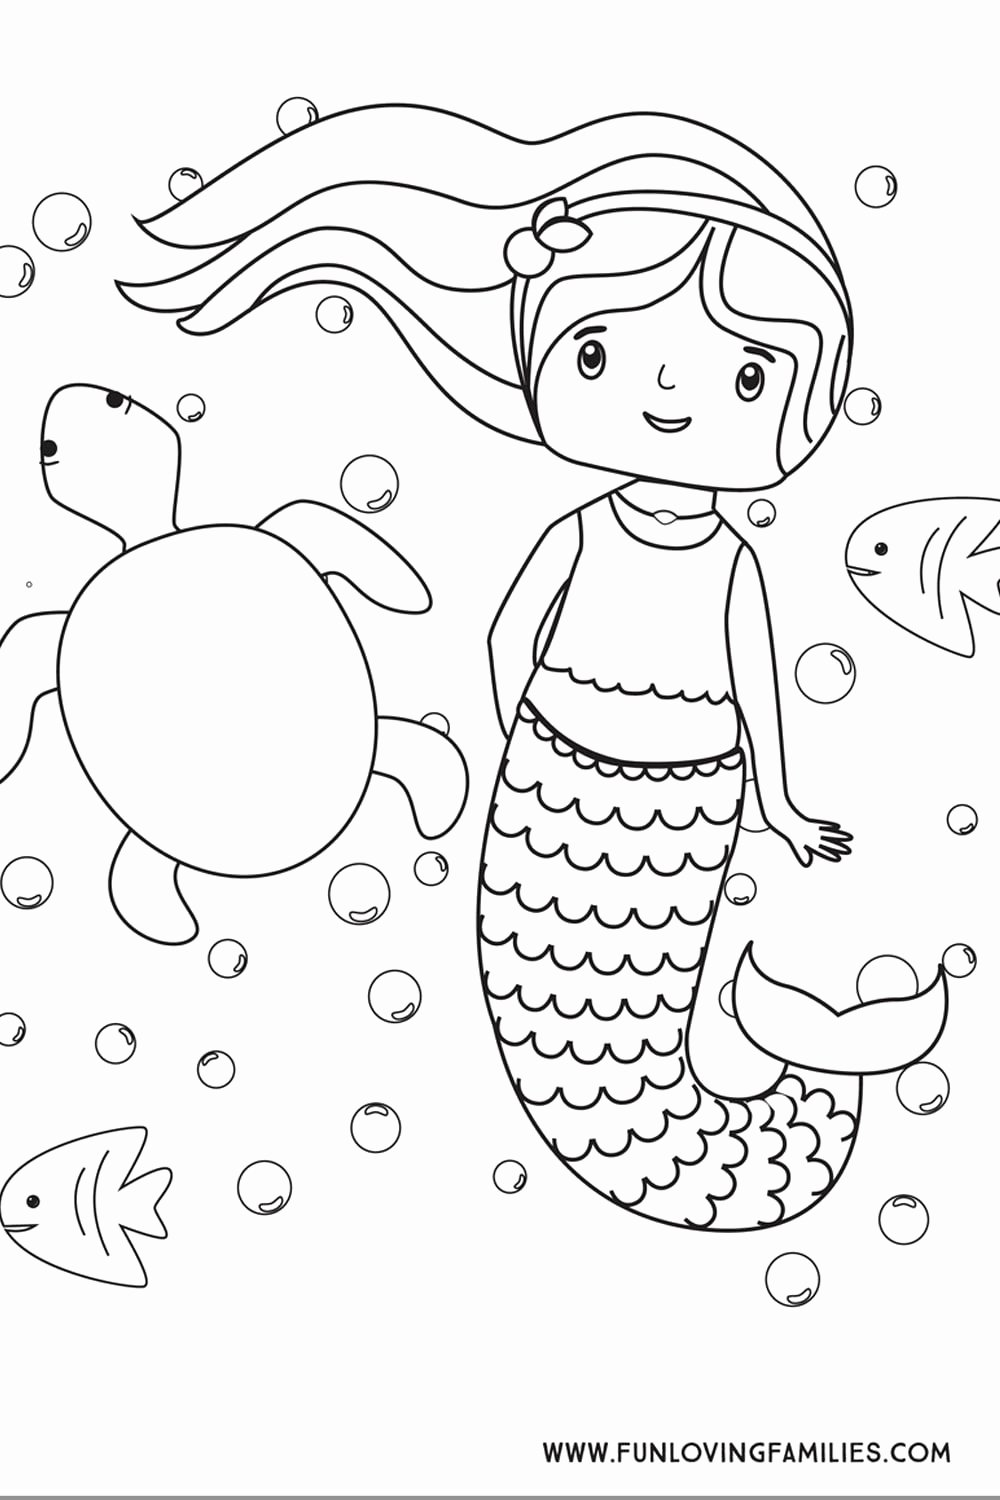 Summer Coloring Worksheets for Preschoolers Fresh Summer Coloring Pages forids Haramiran Unique Mermaid Free